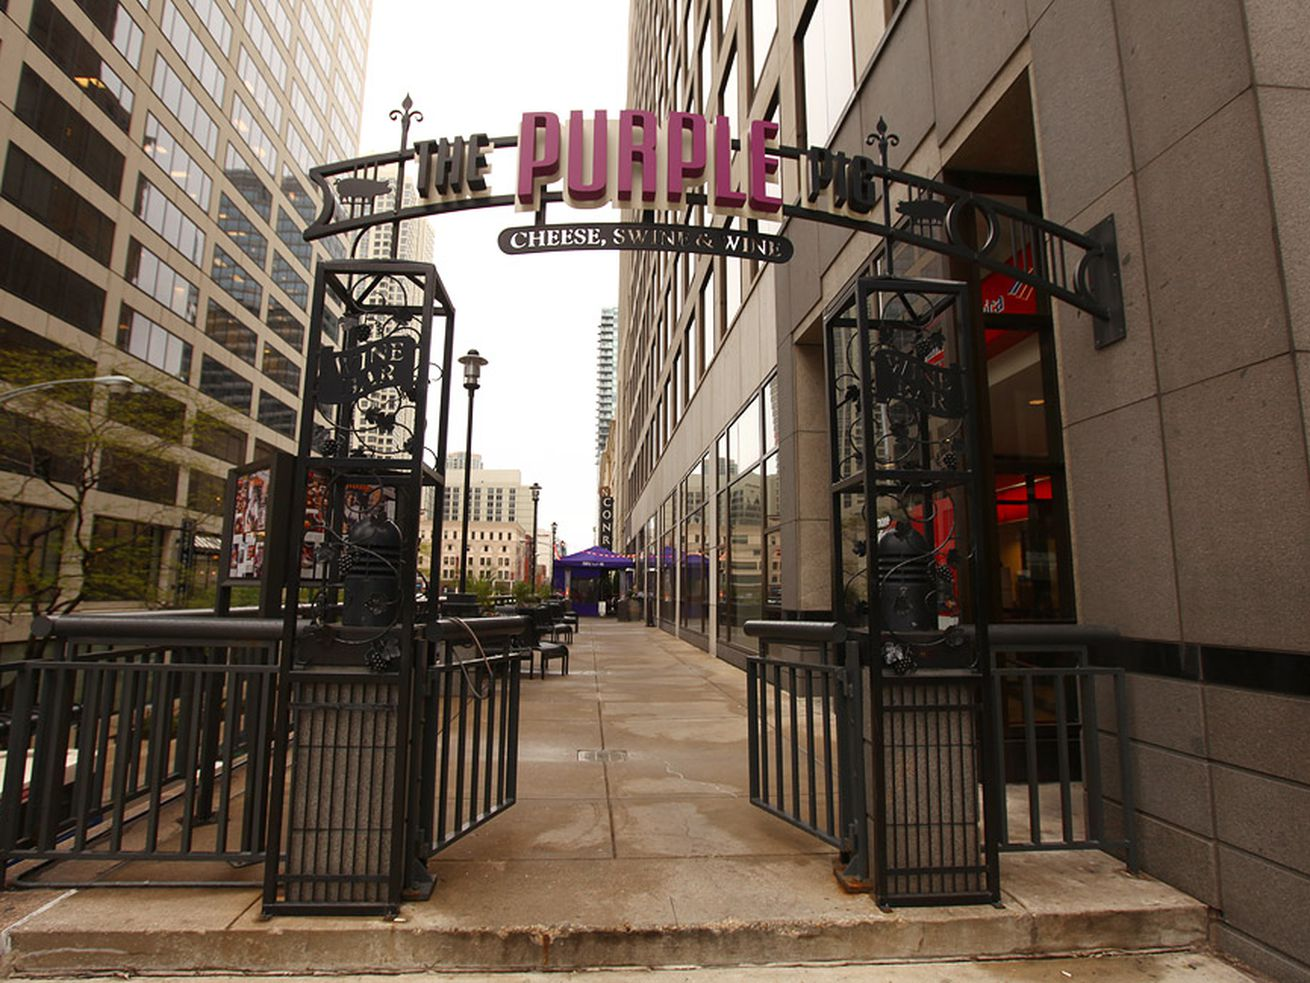 The Purple Pig's been open since 2009.